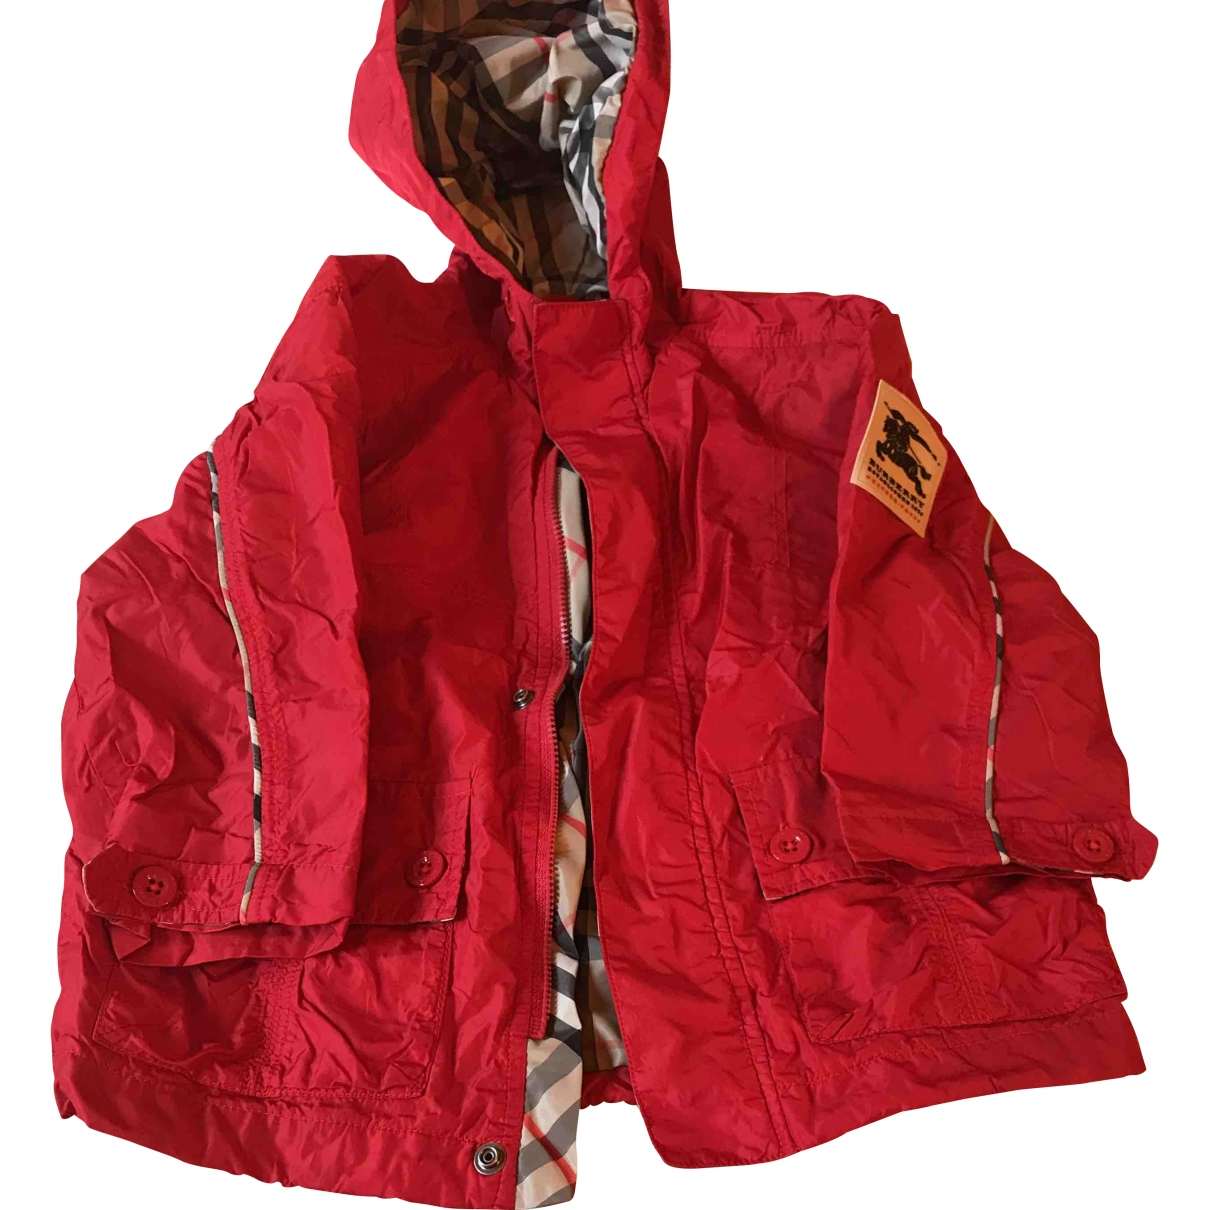 Burberry \N Red jacket & coat for Kids 2 years - up to 86cm FR